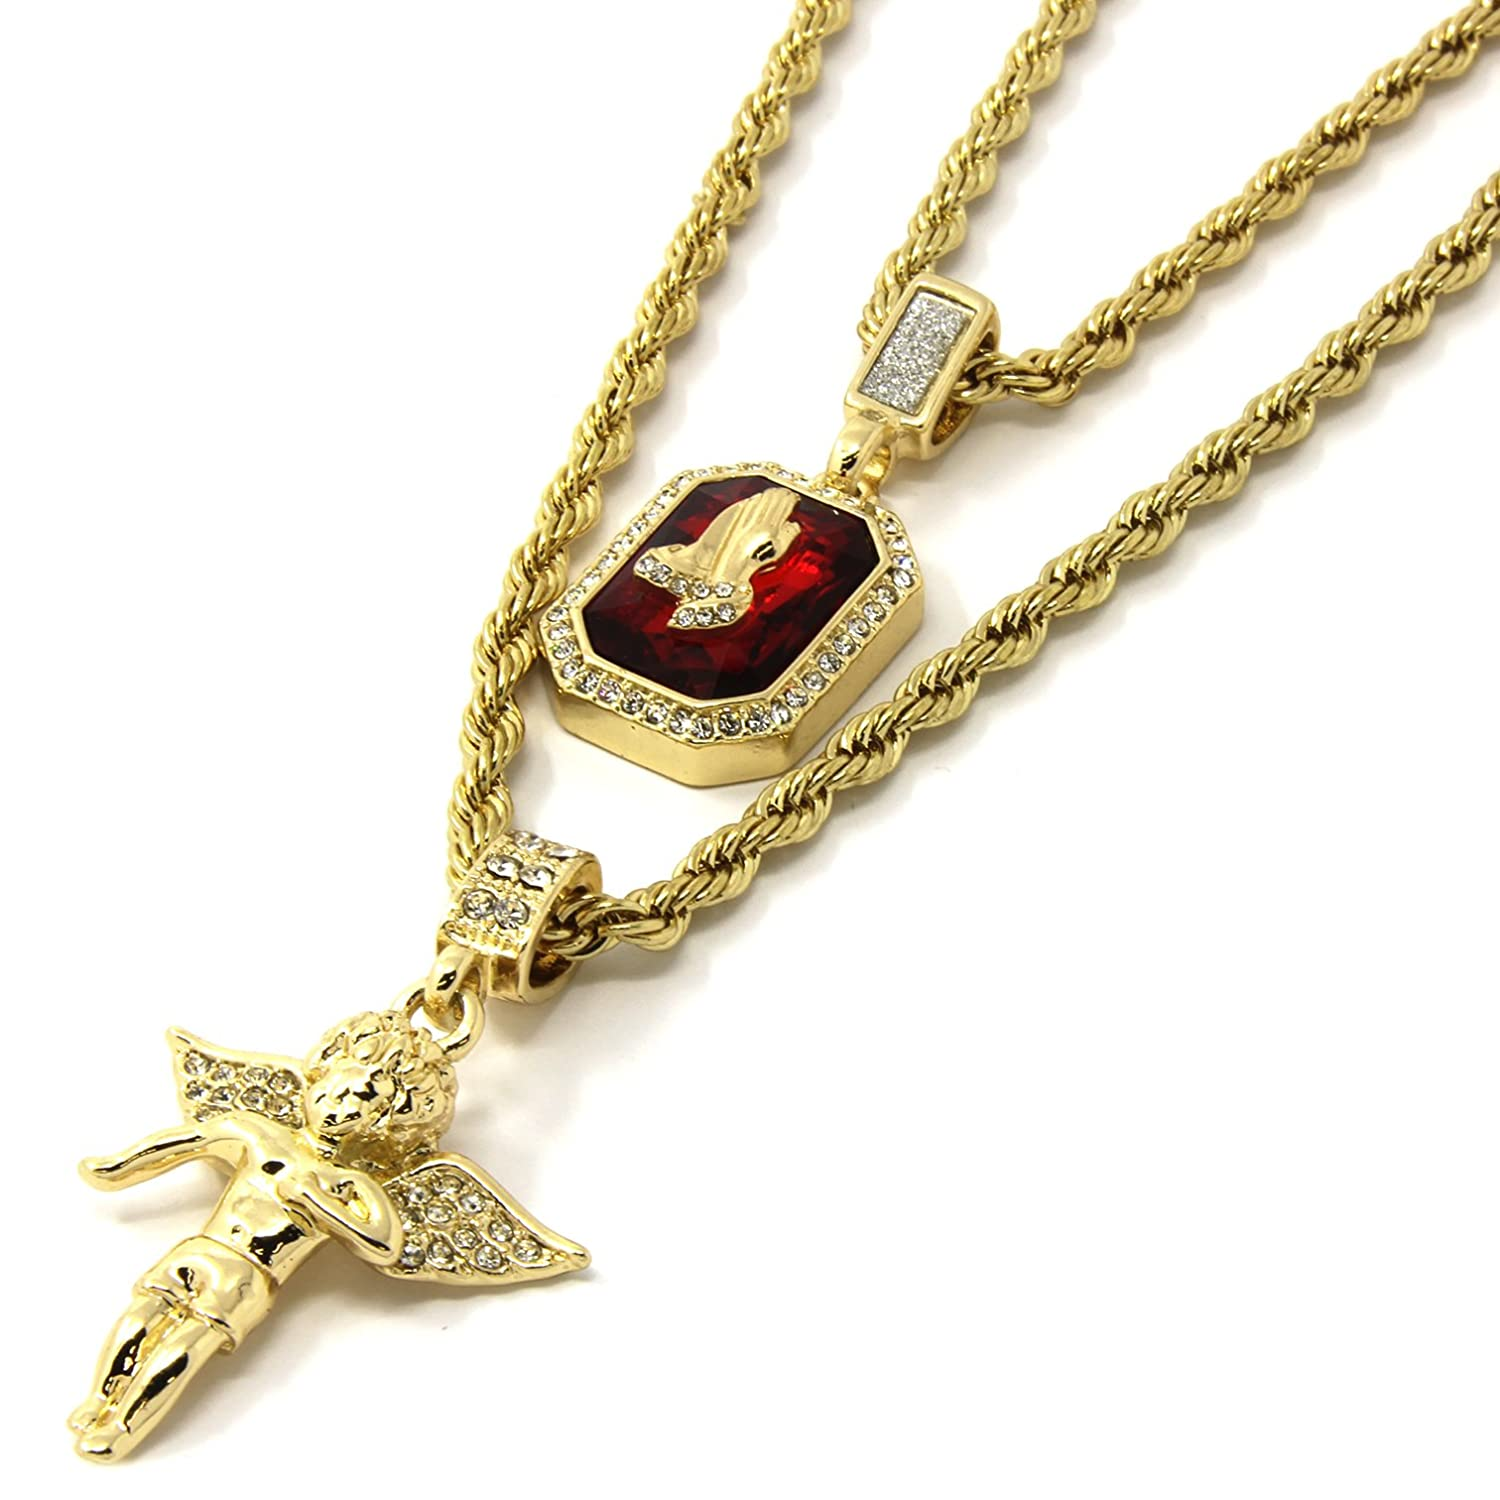 Bundle offer 18k gold plated amp white gold plated necklace 2 ring - Amazon Com Mens Gold Angel P Ruby Bundle Set Cz Pendant Hip Hop 24 30 Rope Chain D463 Jewelry